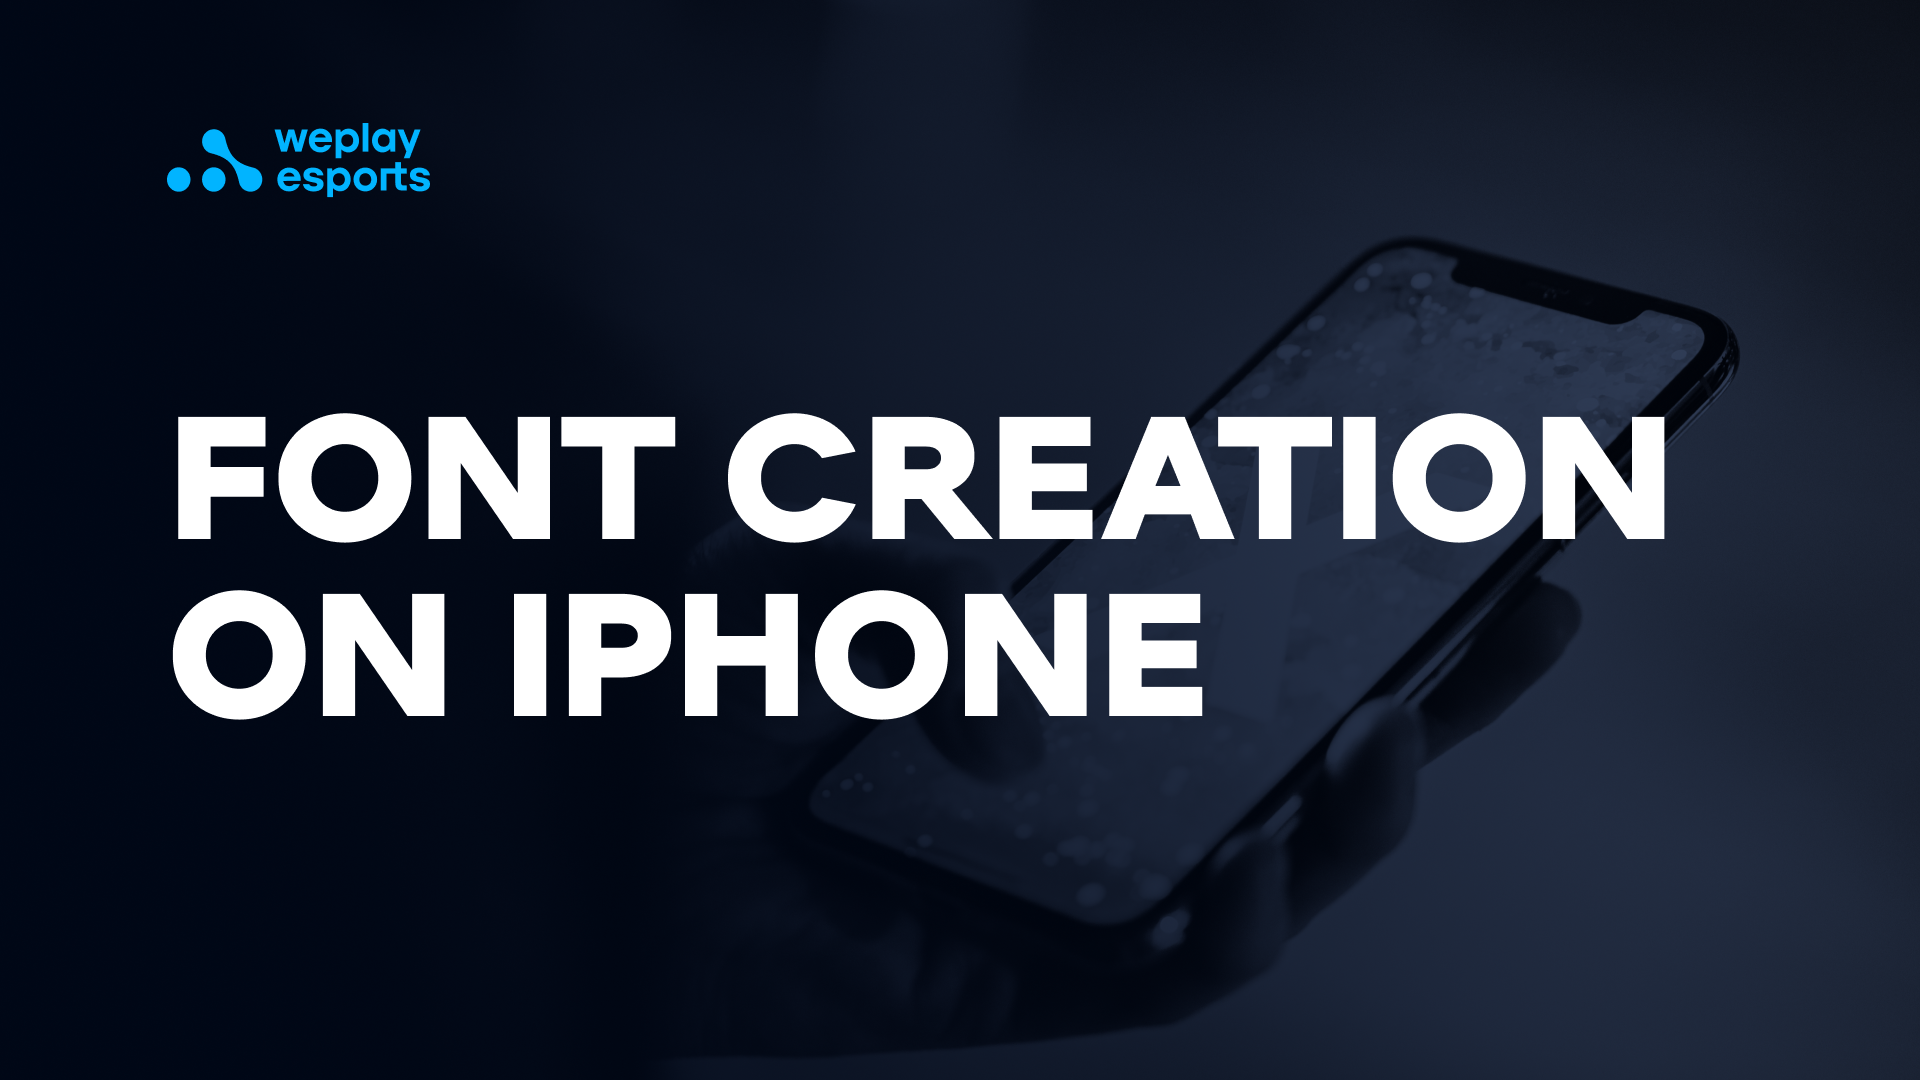 Font creation on iPhone